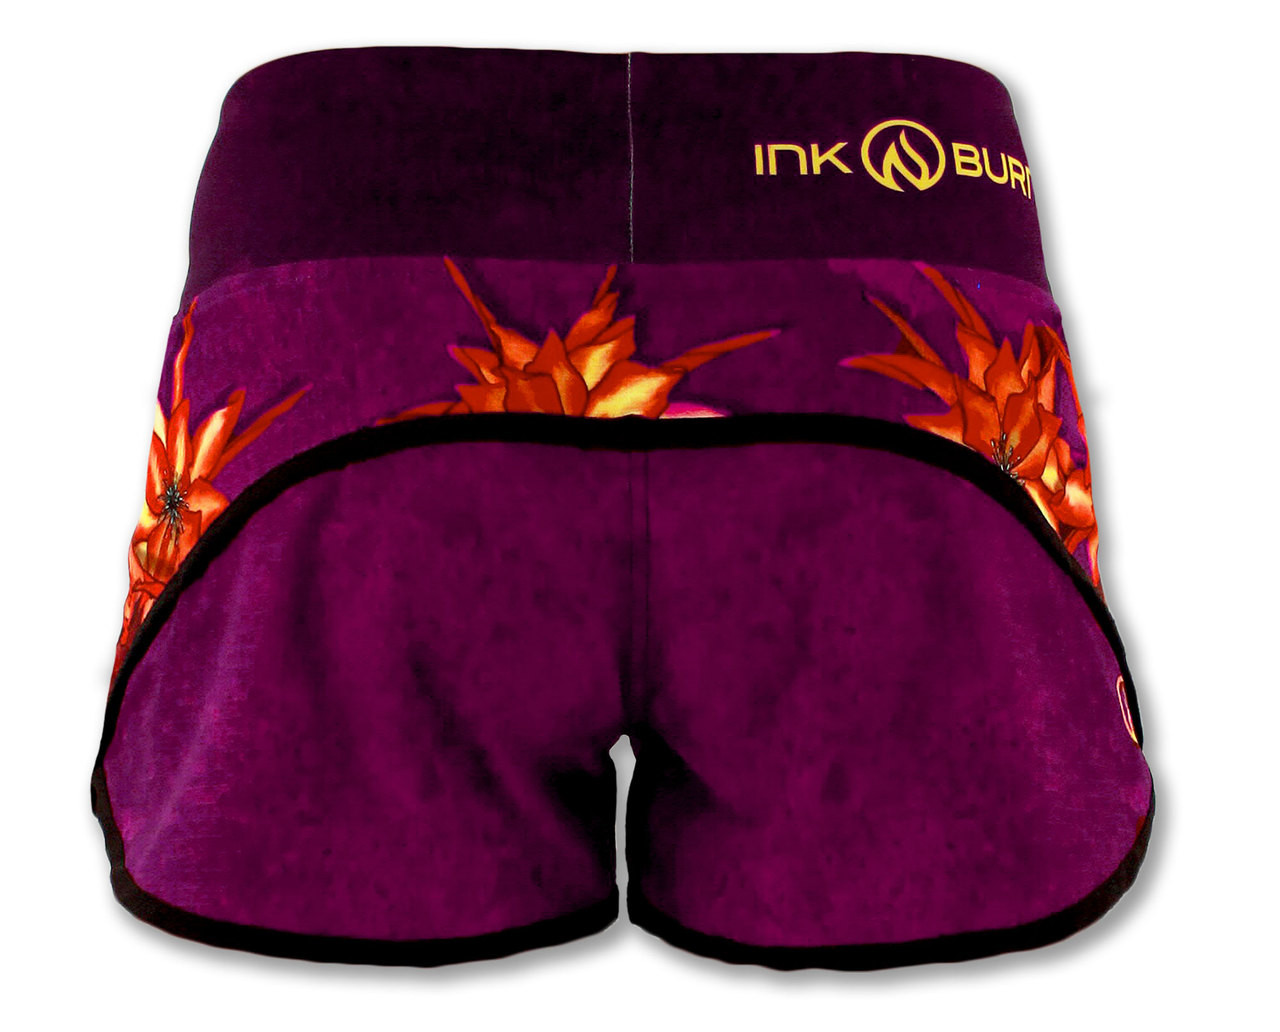 INKnBURN Women's Dragon Flower Shorts Back Waistband Up